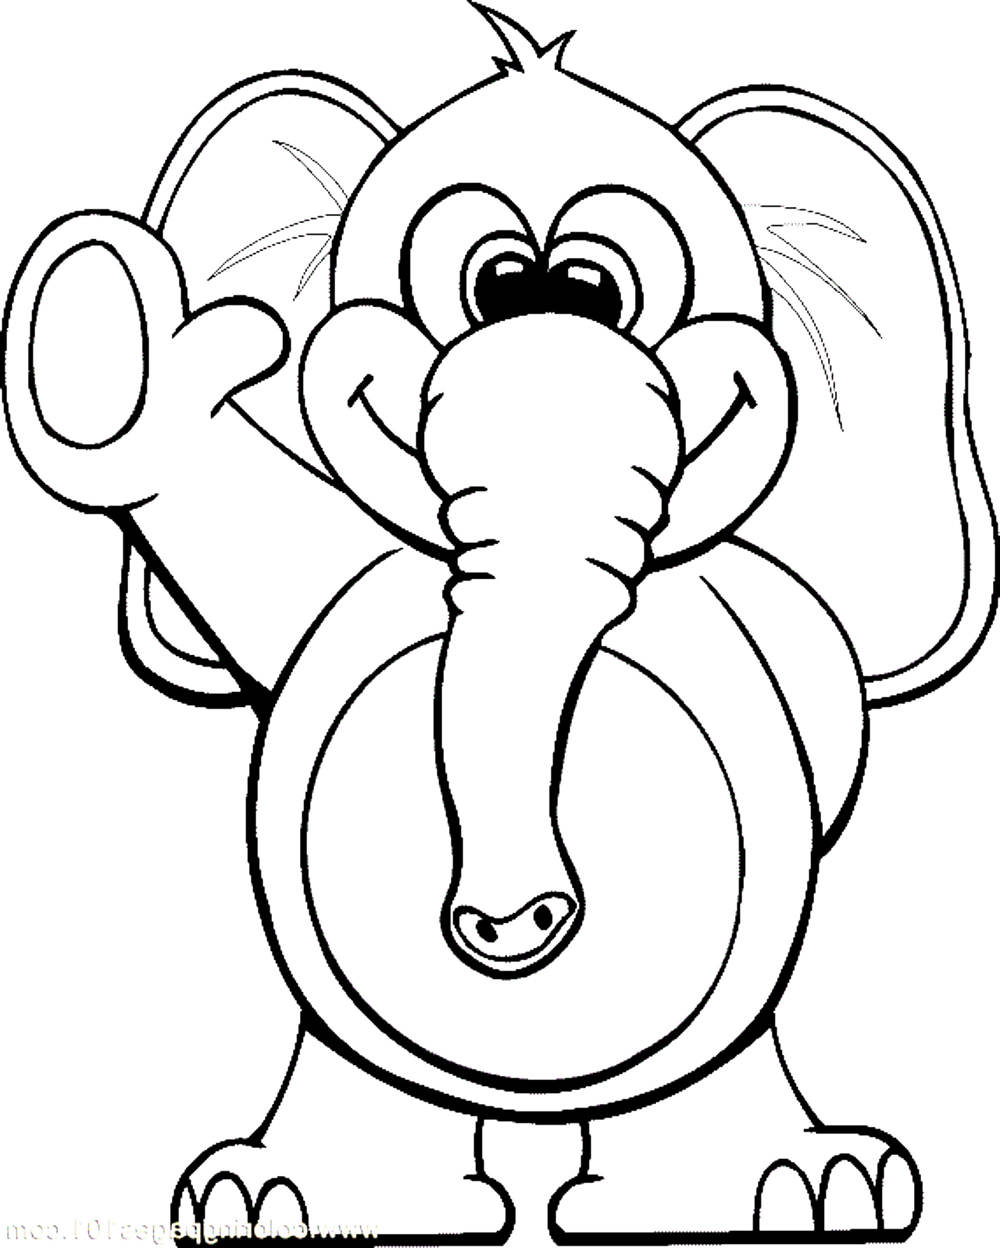 elephant coloring sheets printable print download teaching kids through elephant coloring elephant printable sheets coloring